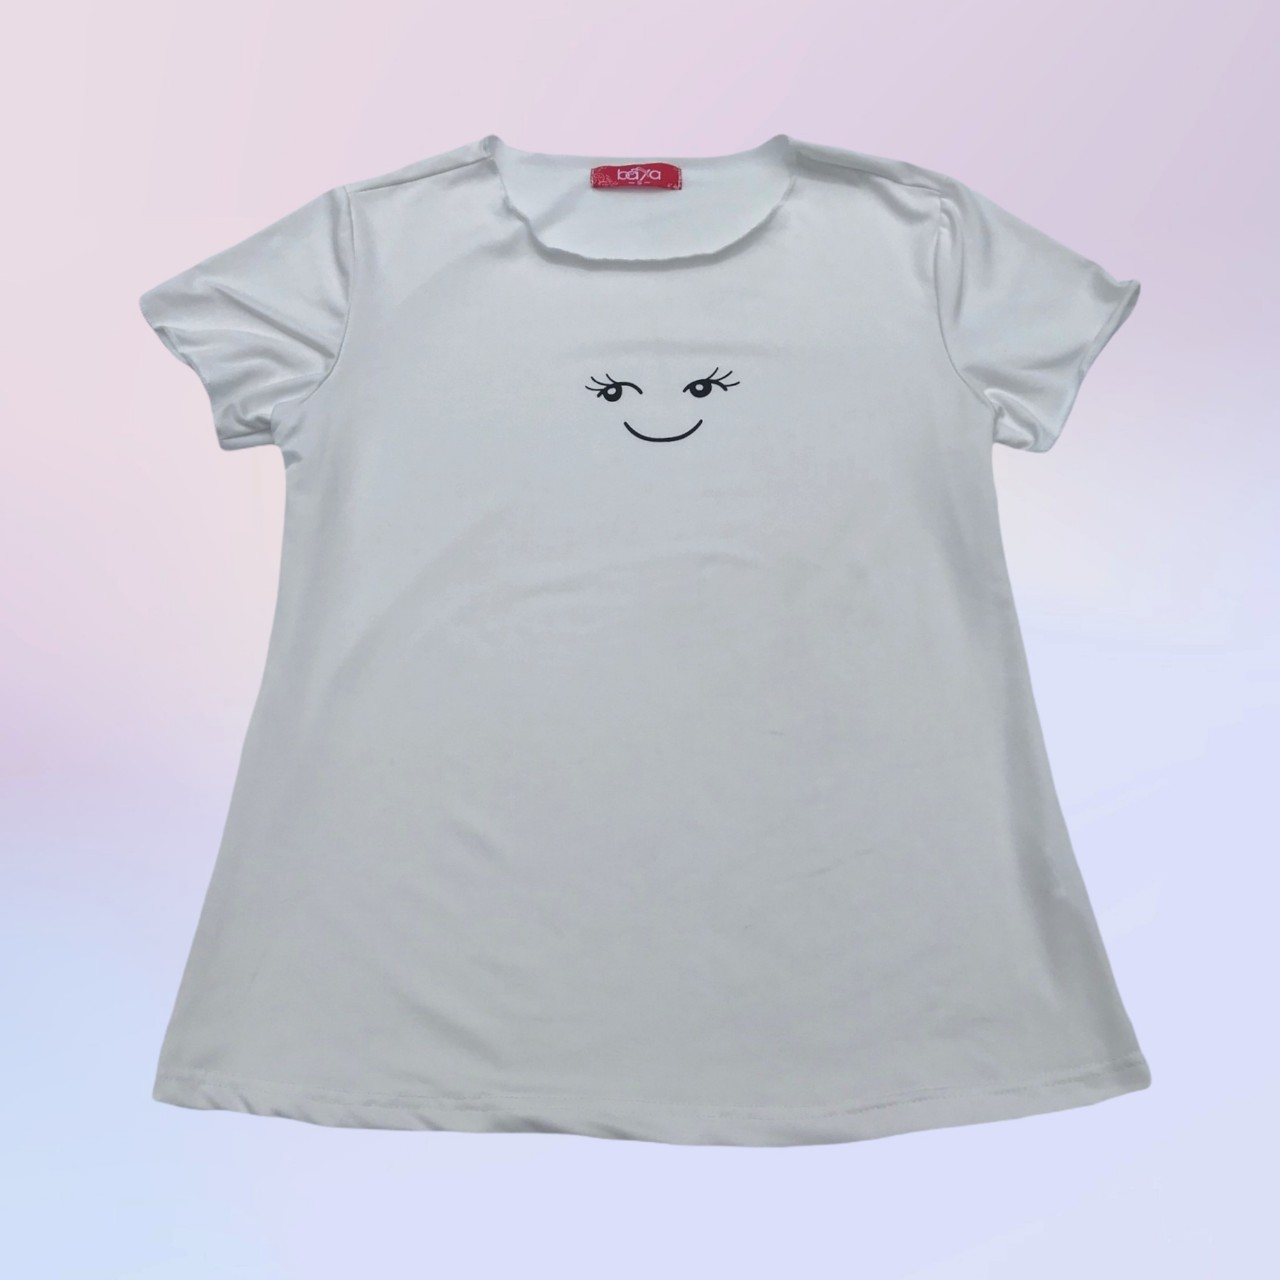 Product Image 1 - cute smile graphic t shirt!